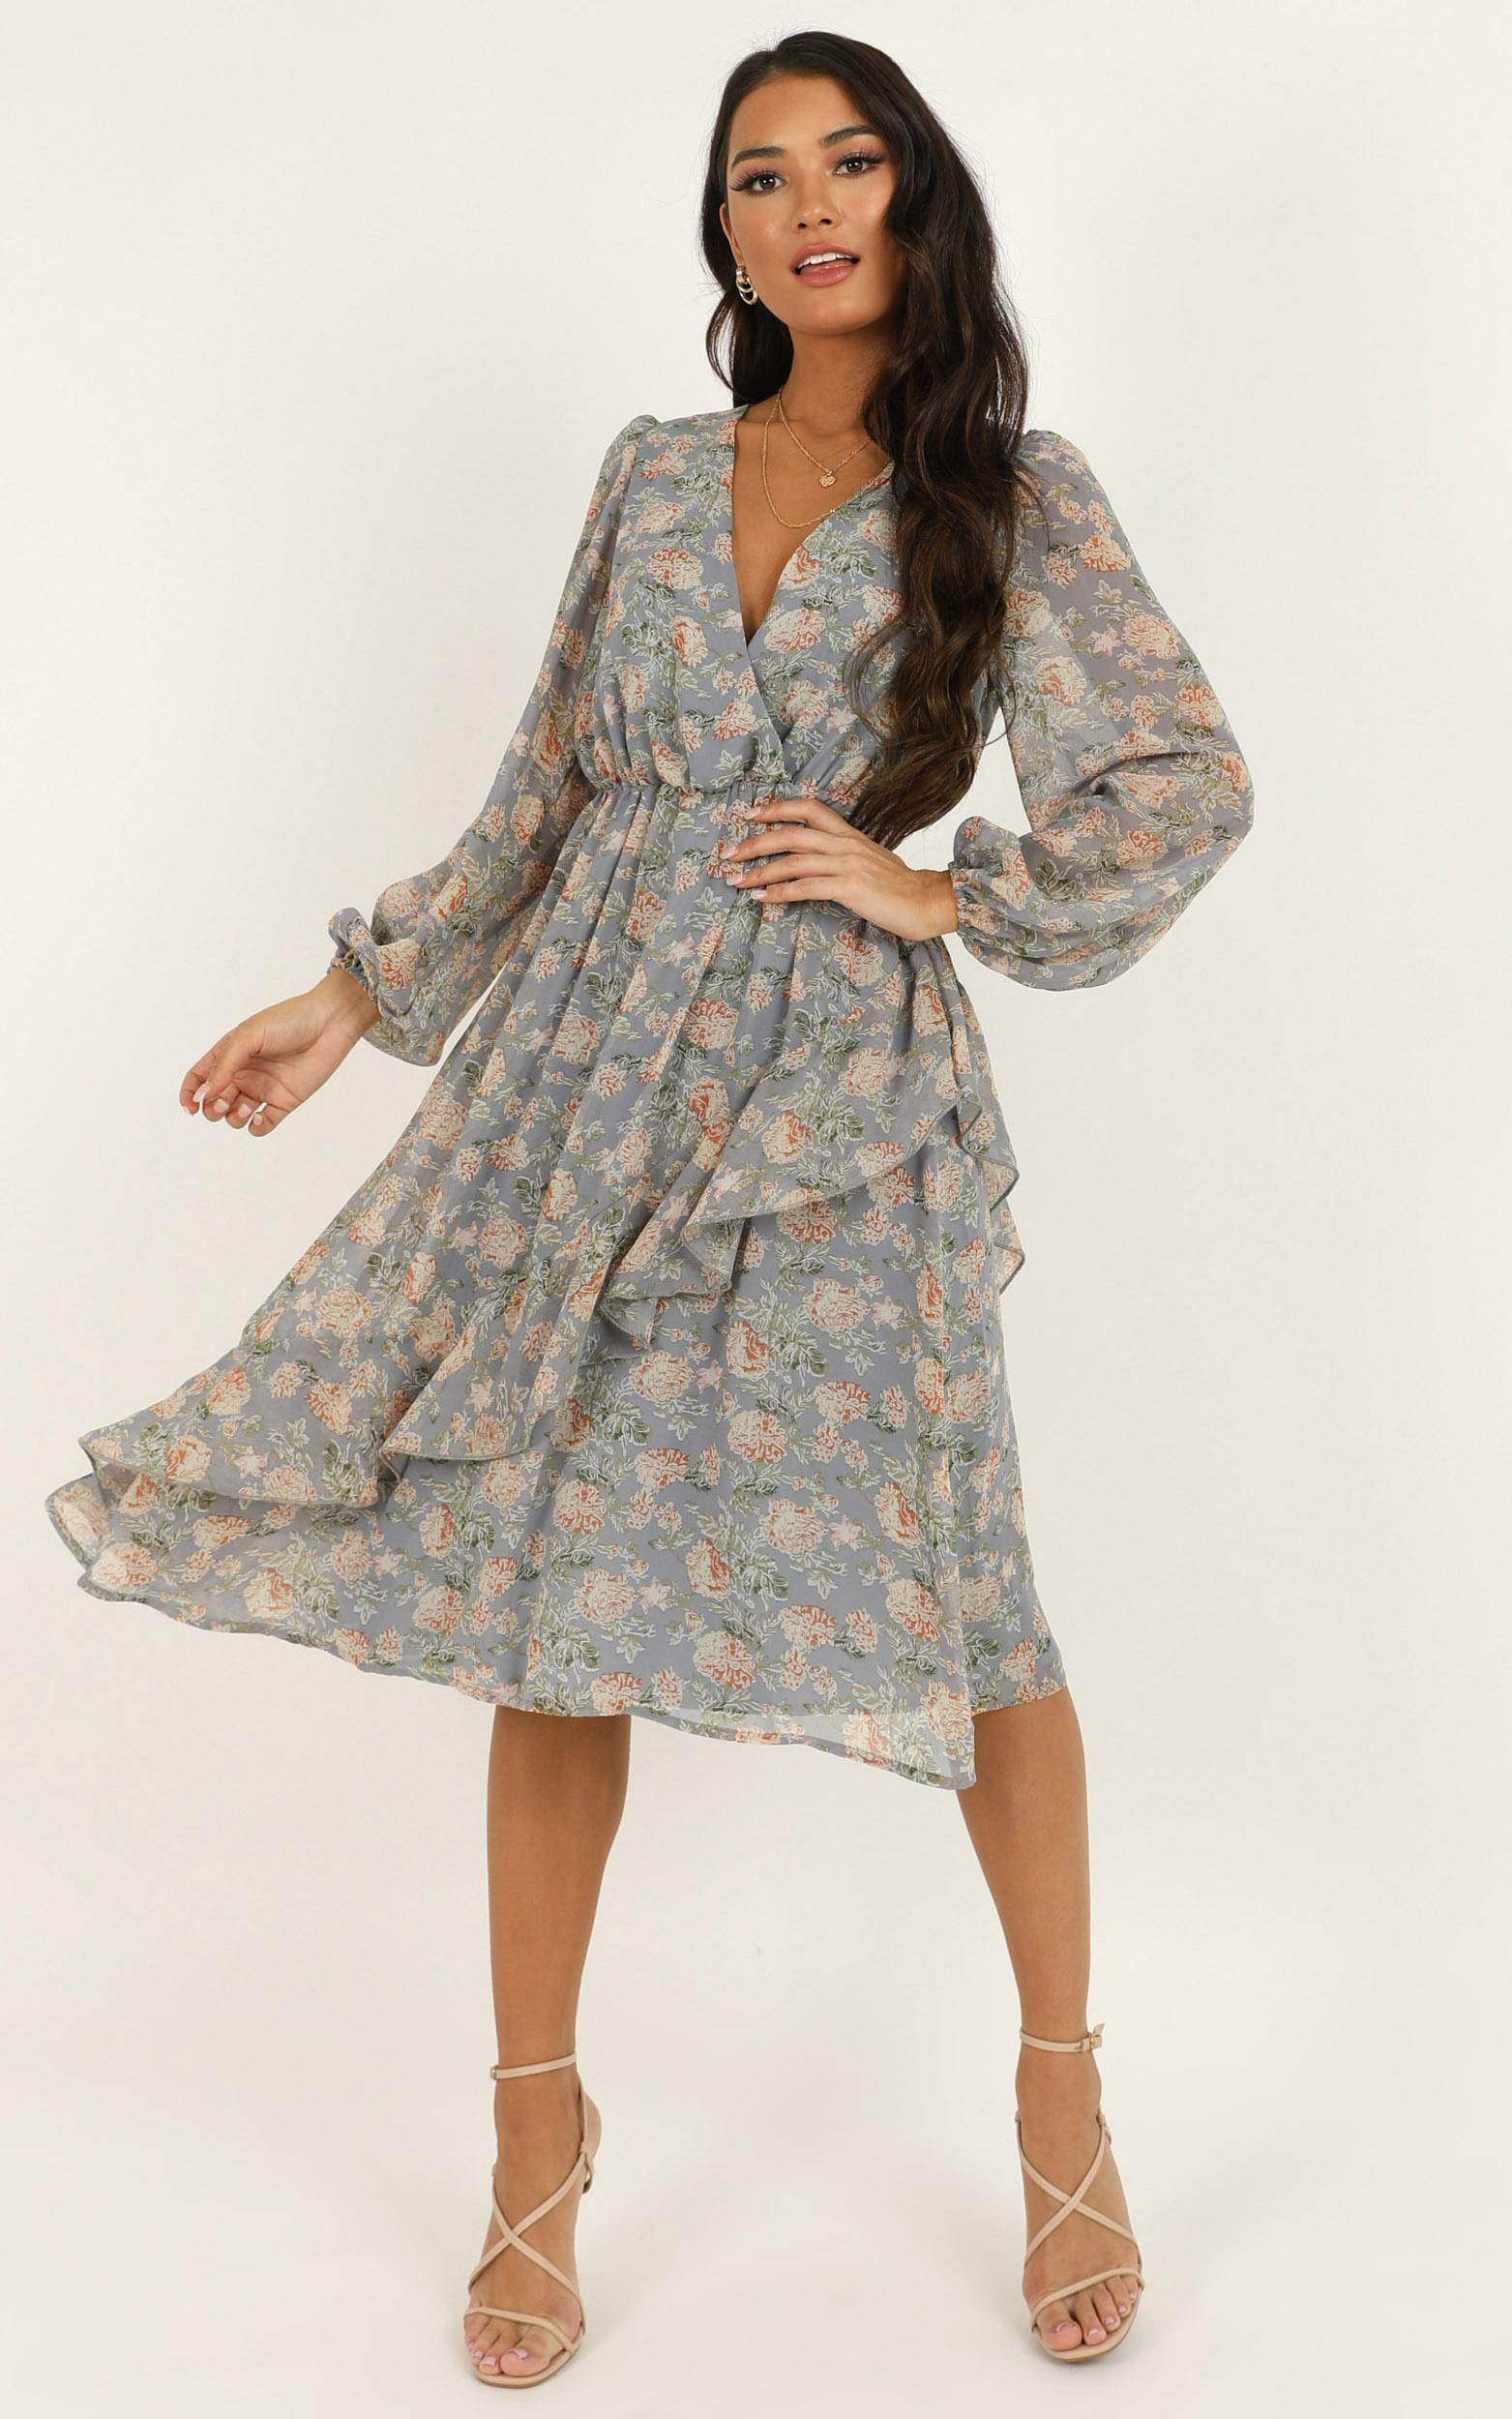 Eternal Youth Dress in blue floral - 20 (XXXXL), Blue, hi-res image number null